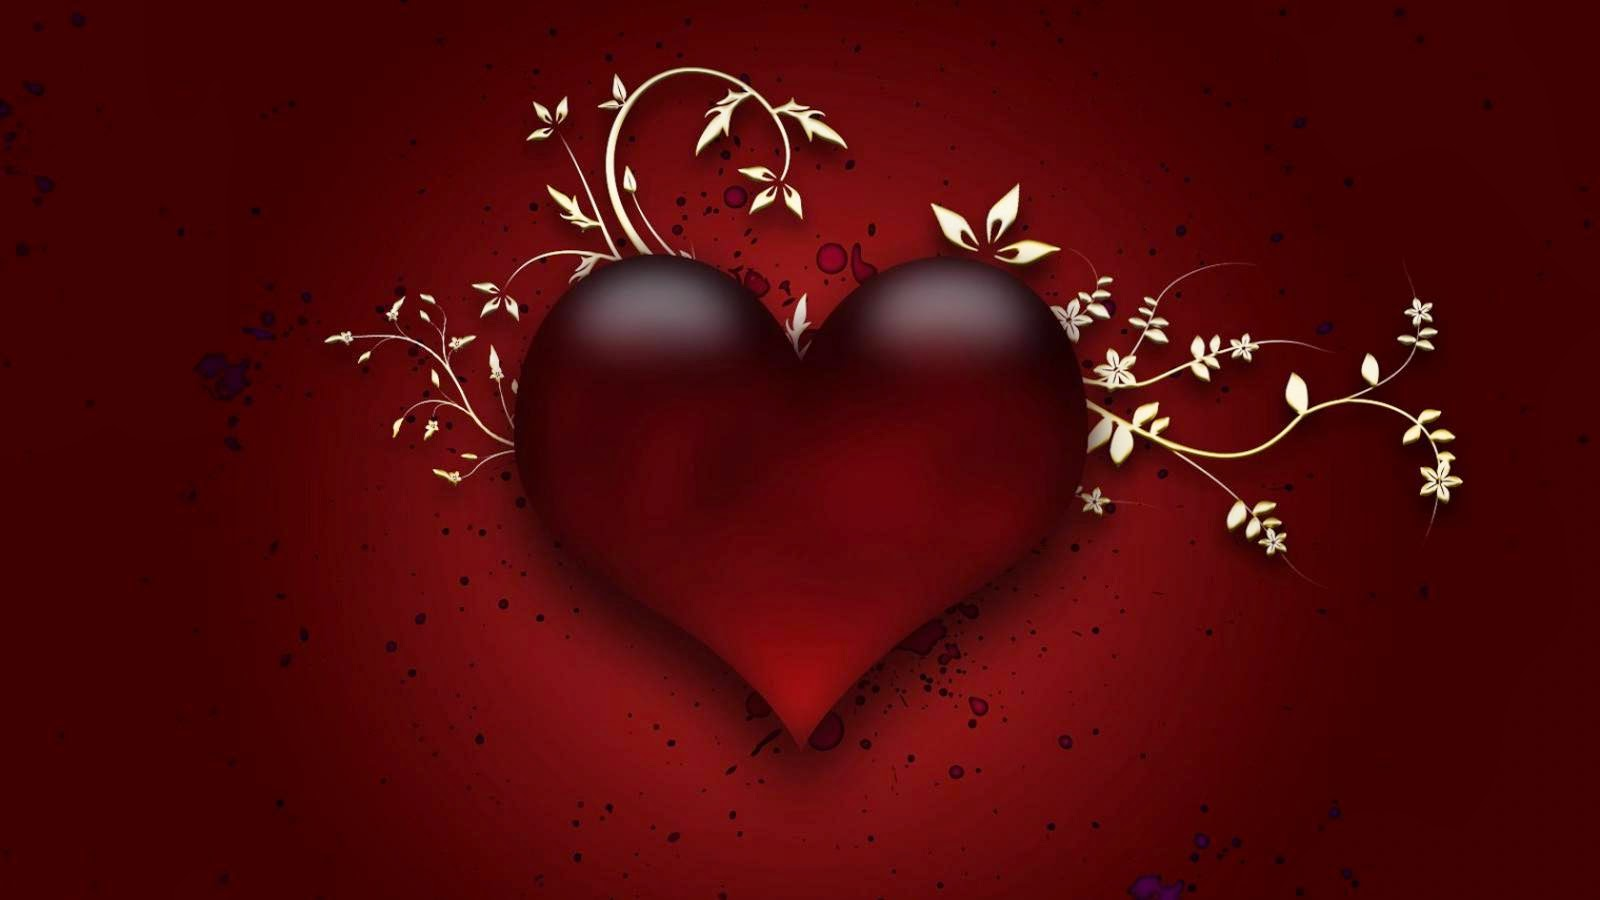 Love Hearts Wallpapers | HD Wallpapers | Download Free High Definition Desktop / PC Wallpapers